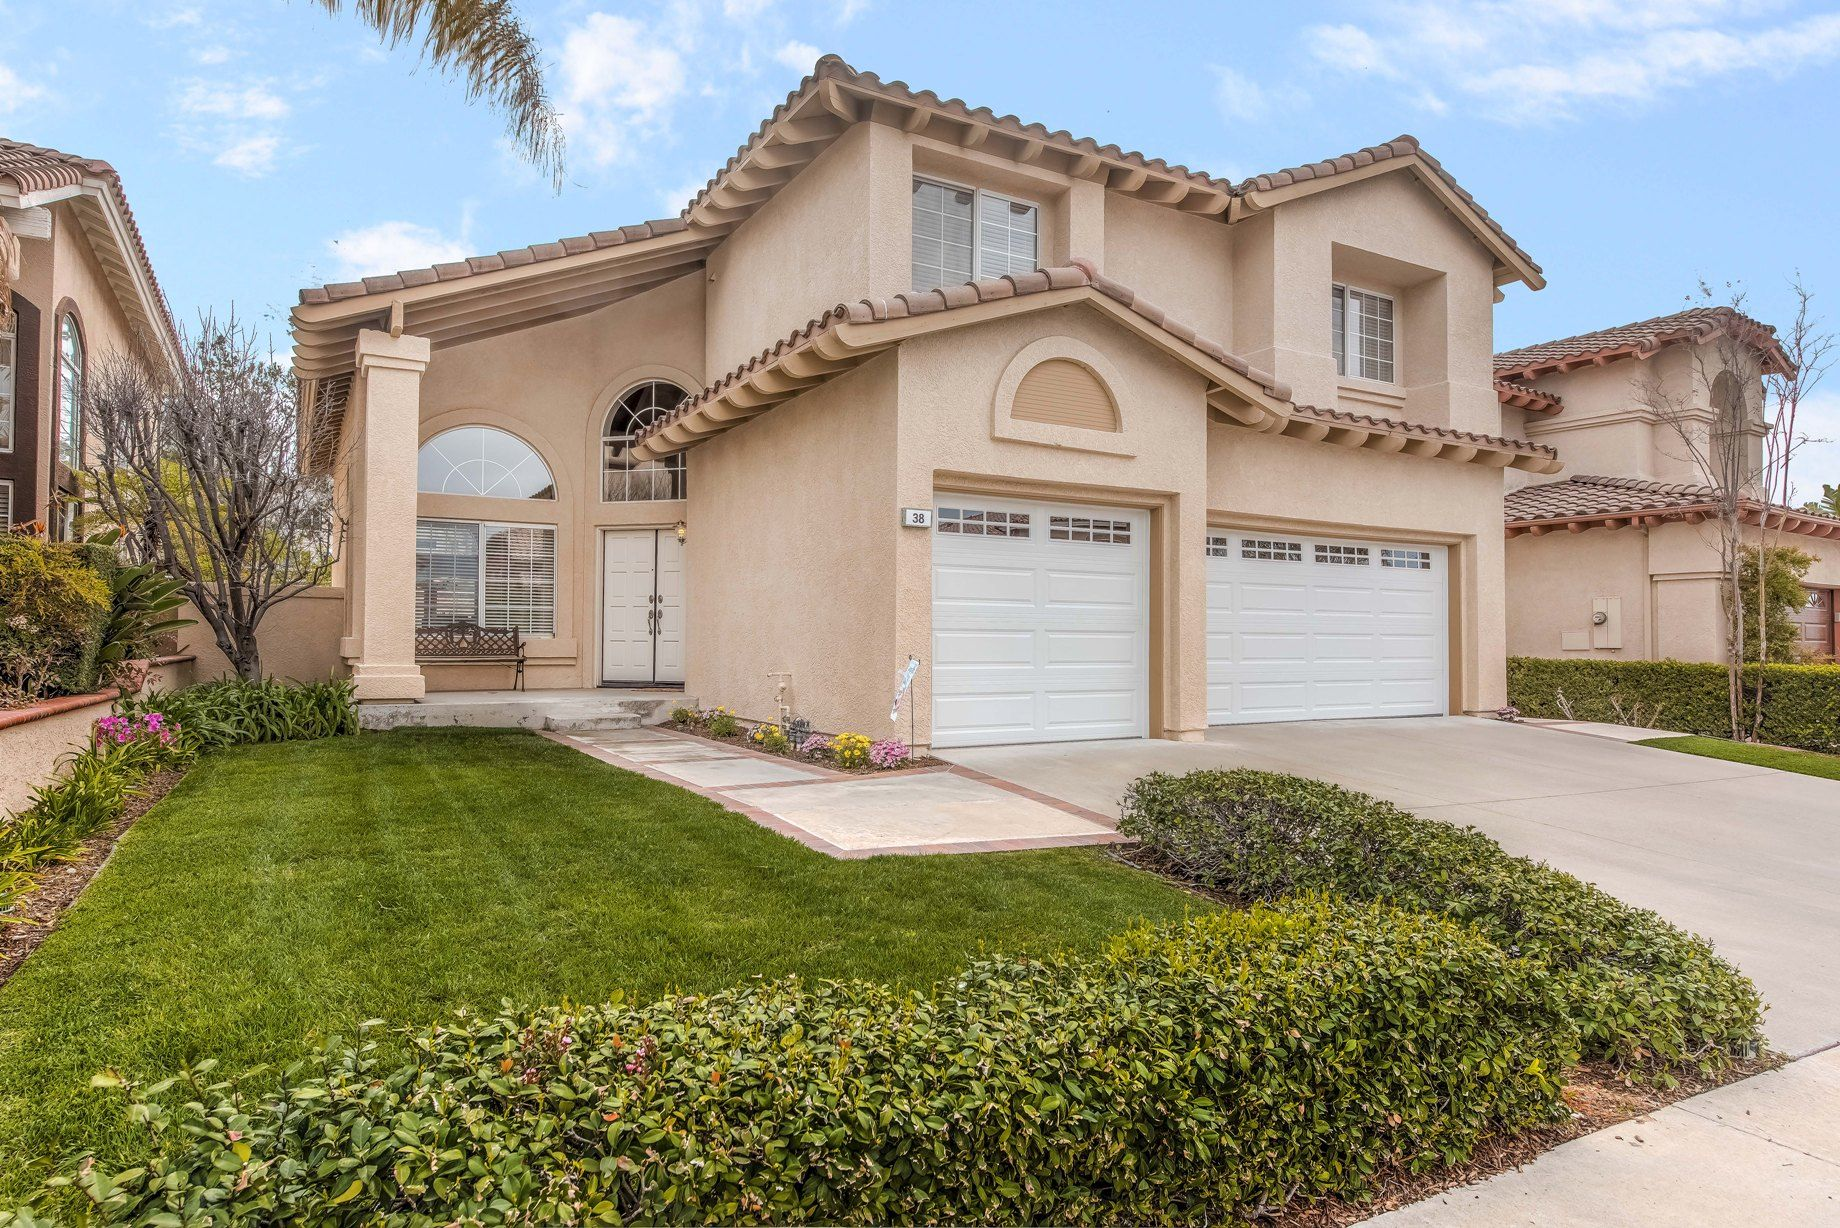 38 Monserrat Pl Foothill Ranch CA Estimate and Home